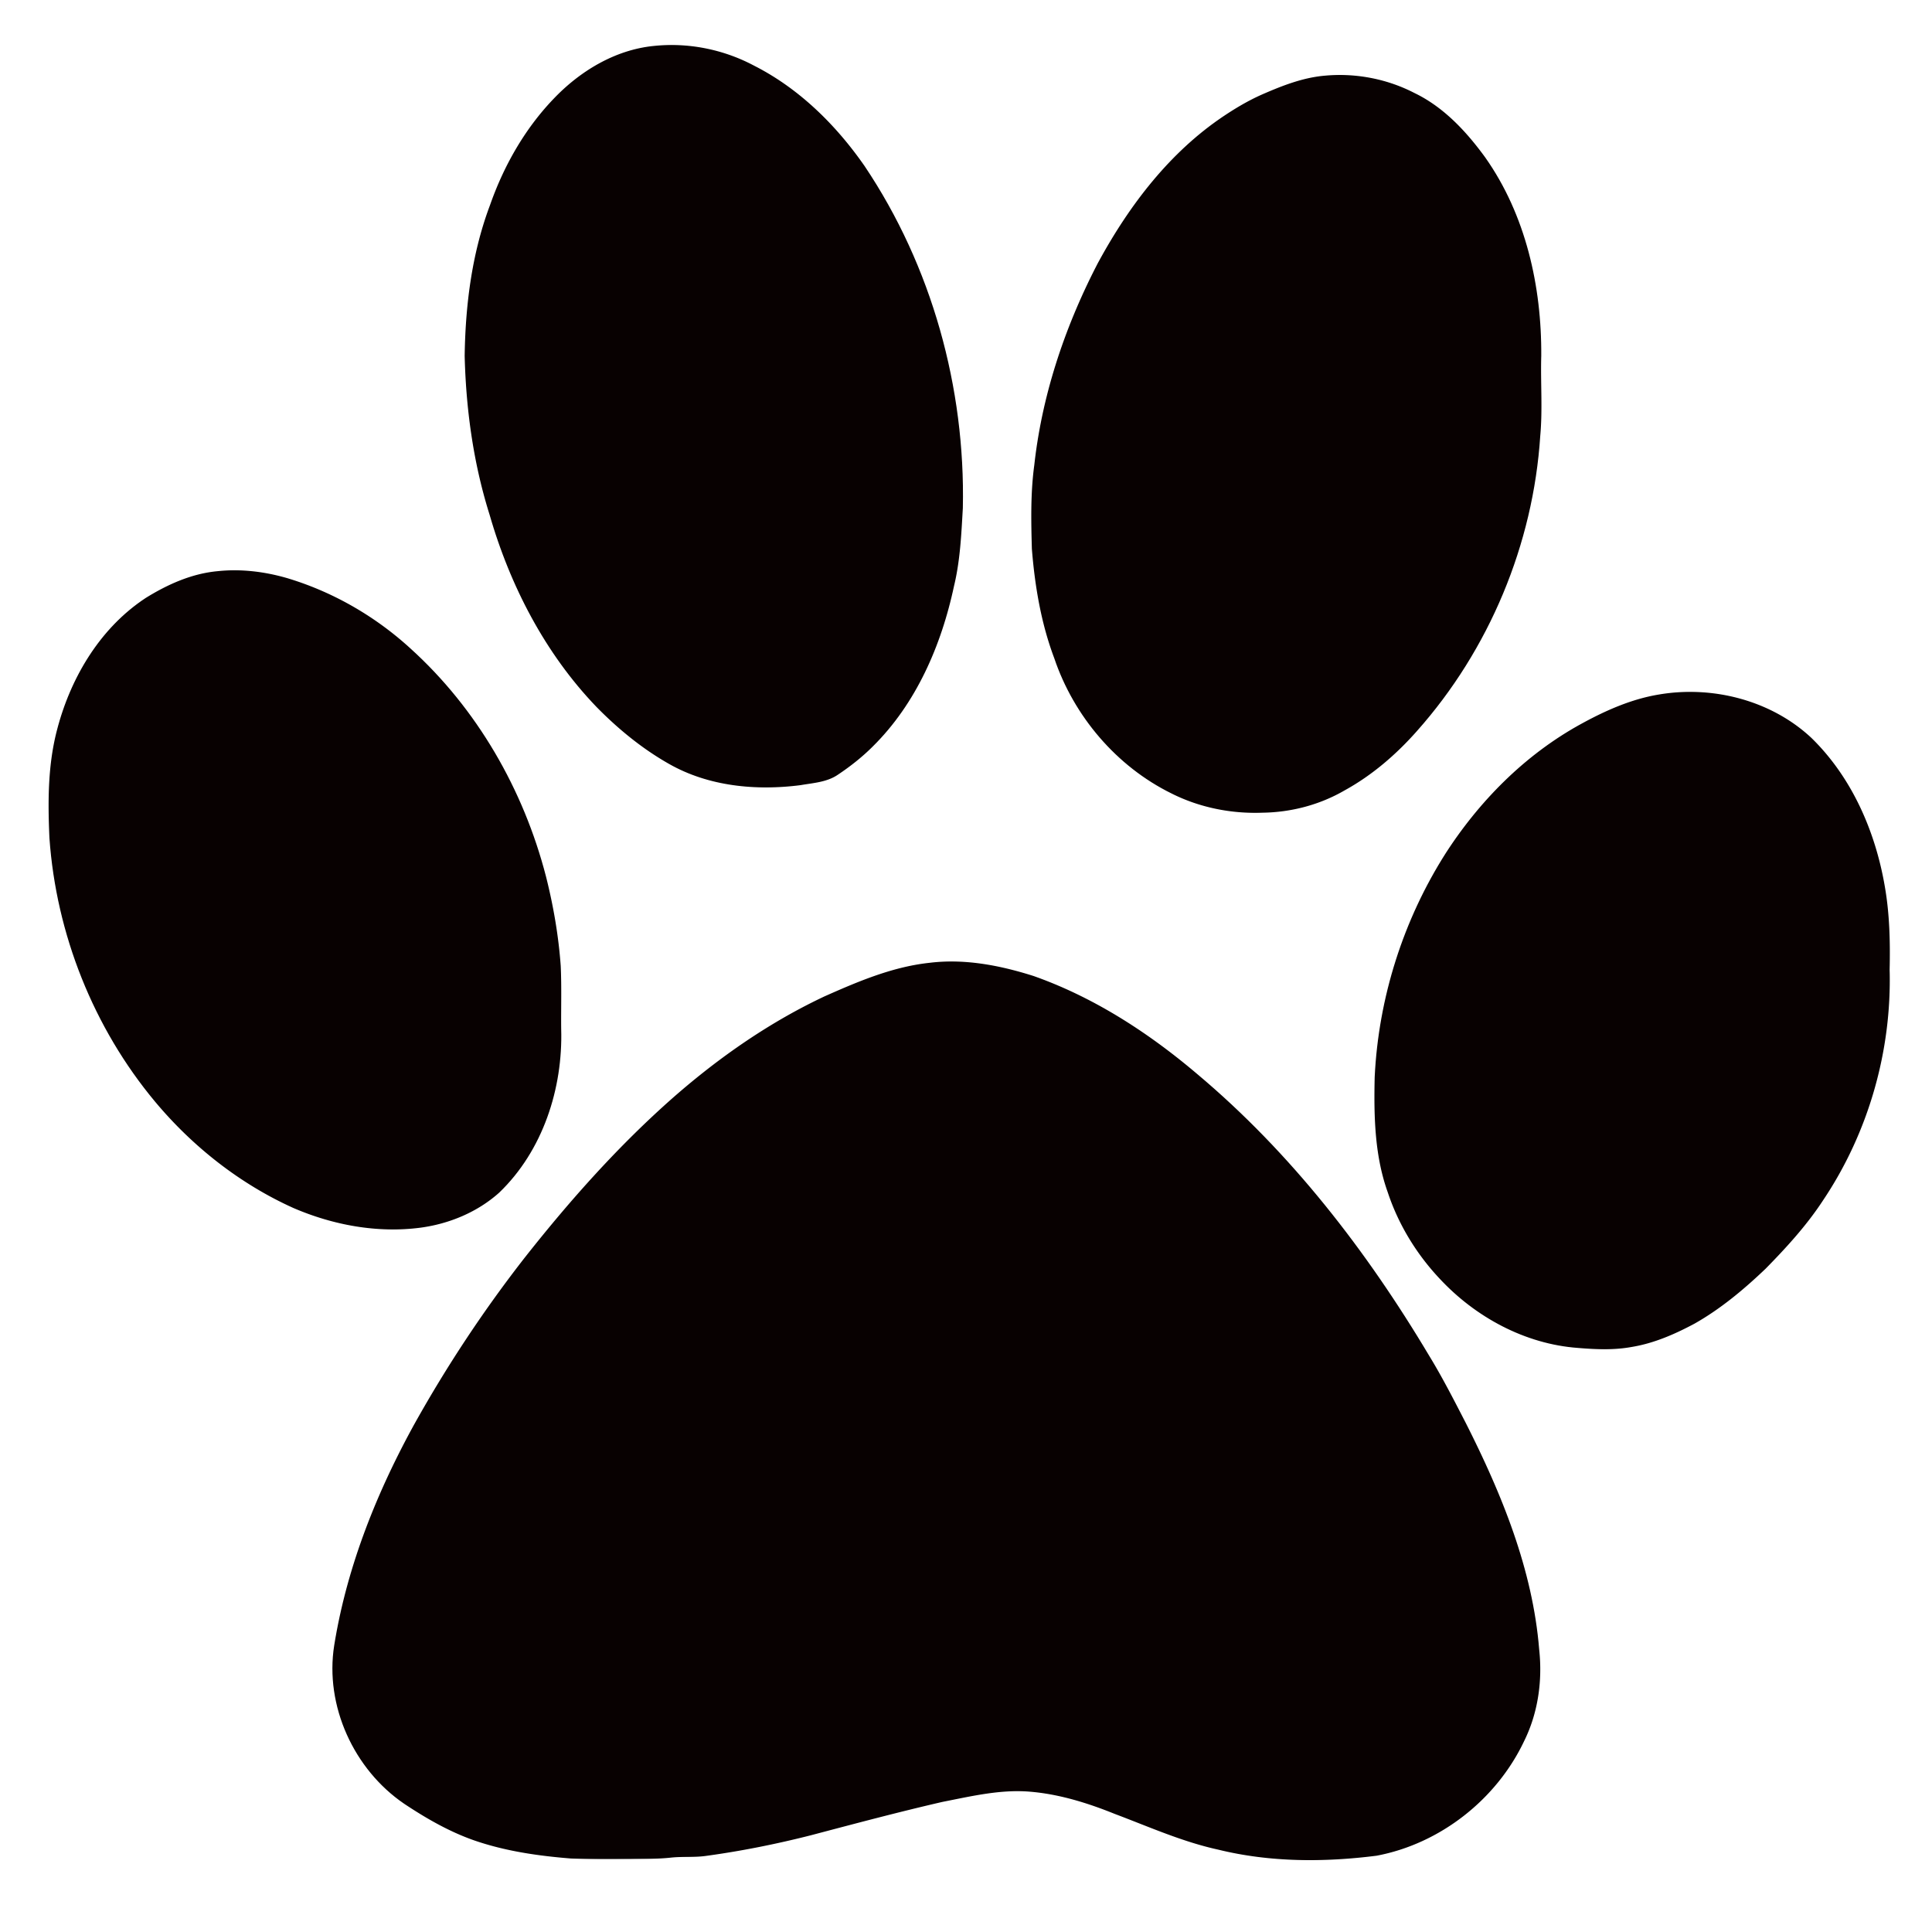 Dog Paw Print Images   HD Wallpapers Lovely 2500x2500